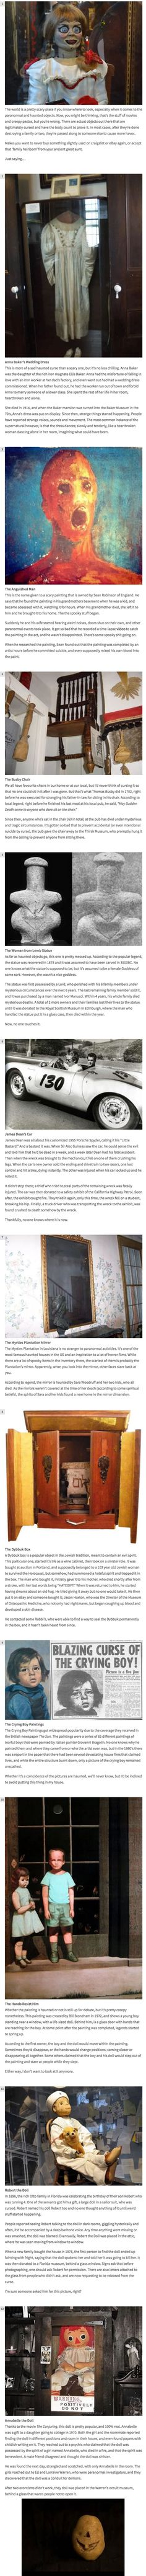 12 Most Haunted Objects In The World To Fuel Your Nightmares